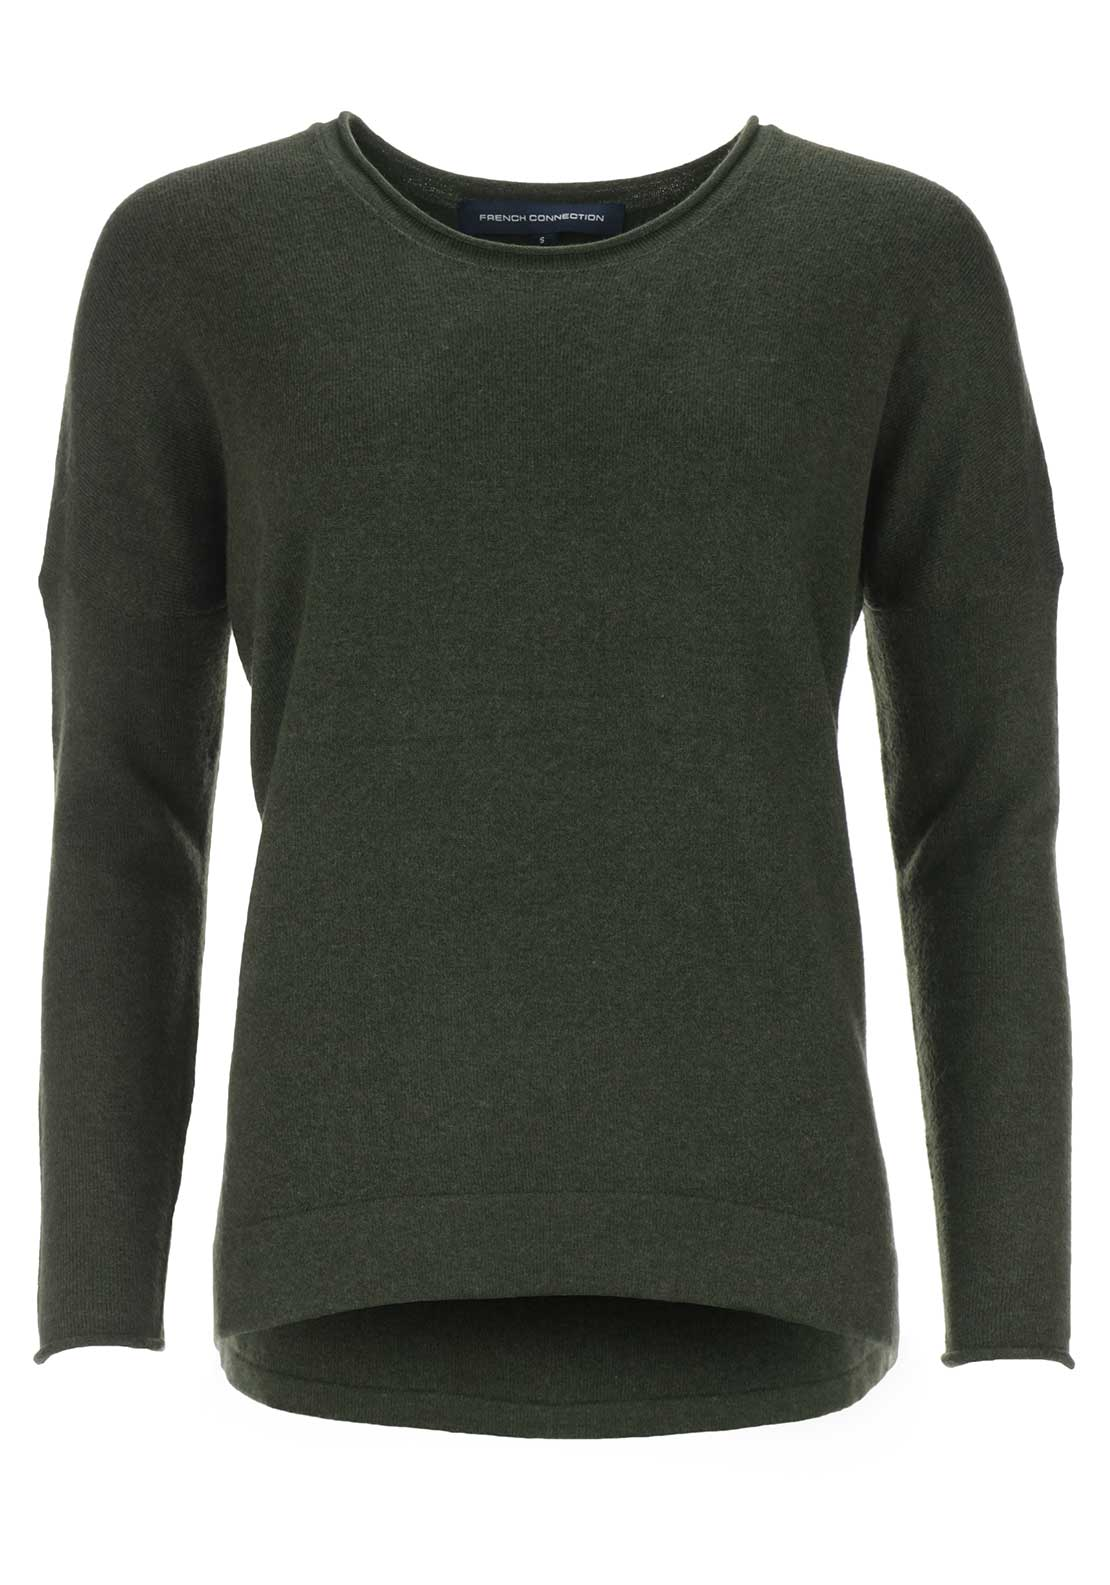 French Connection Womens Viva Wool Blend Sweater Jumper, Dark Olive Green